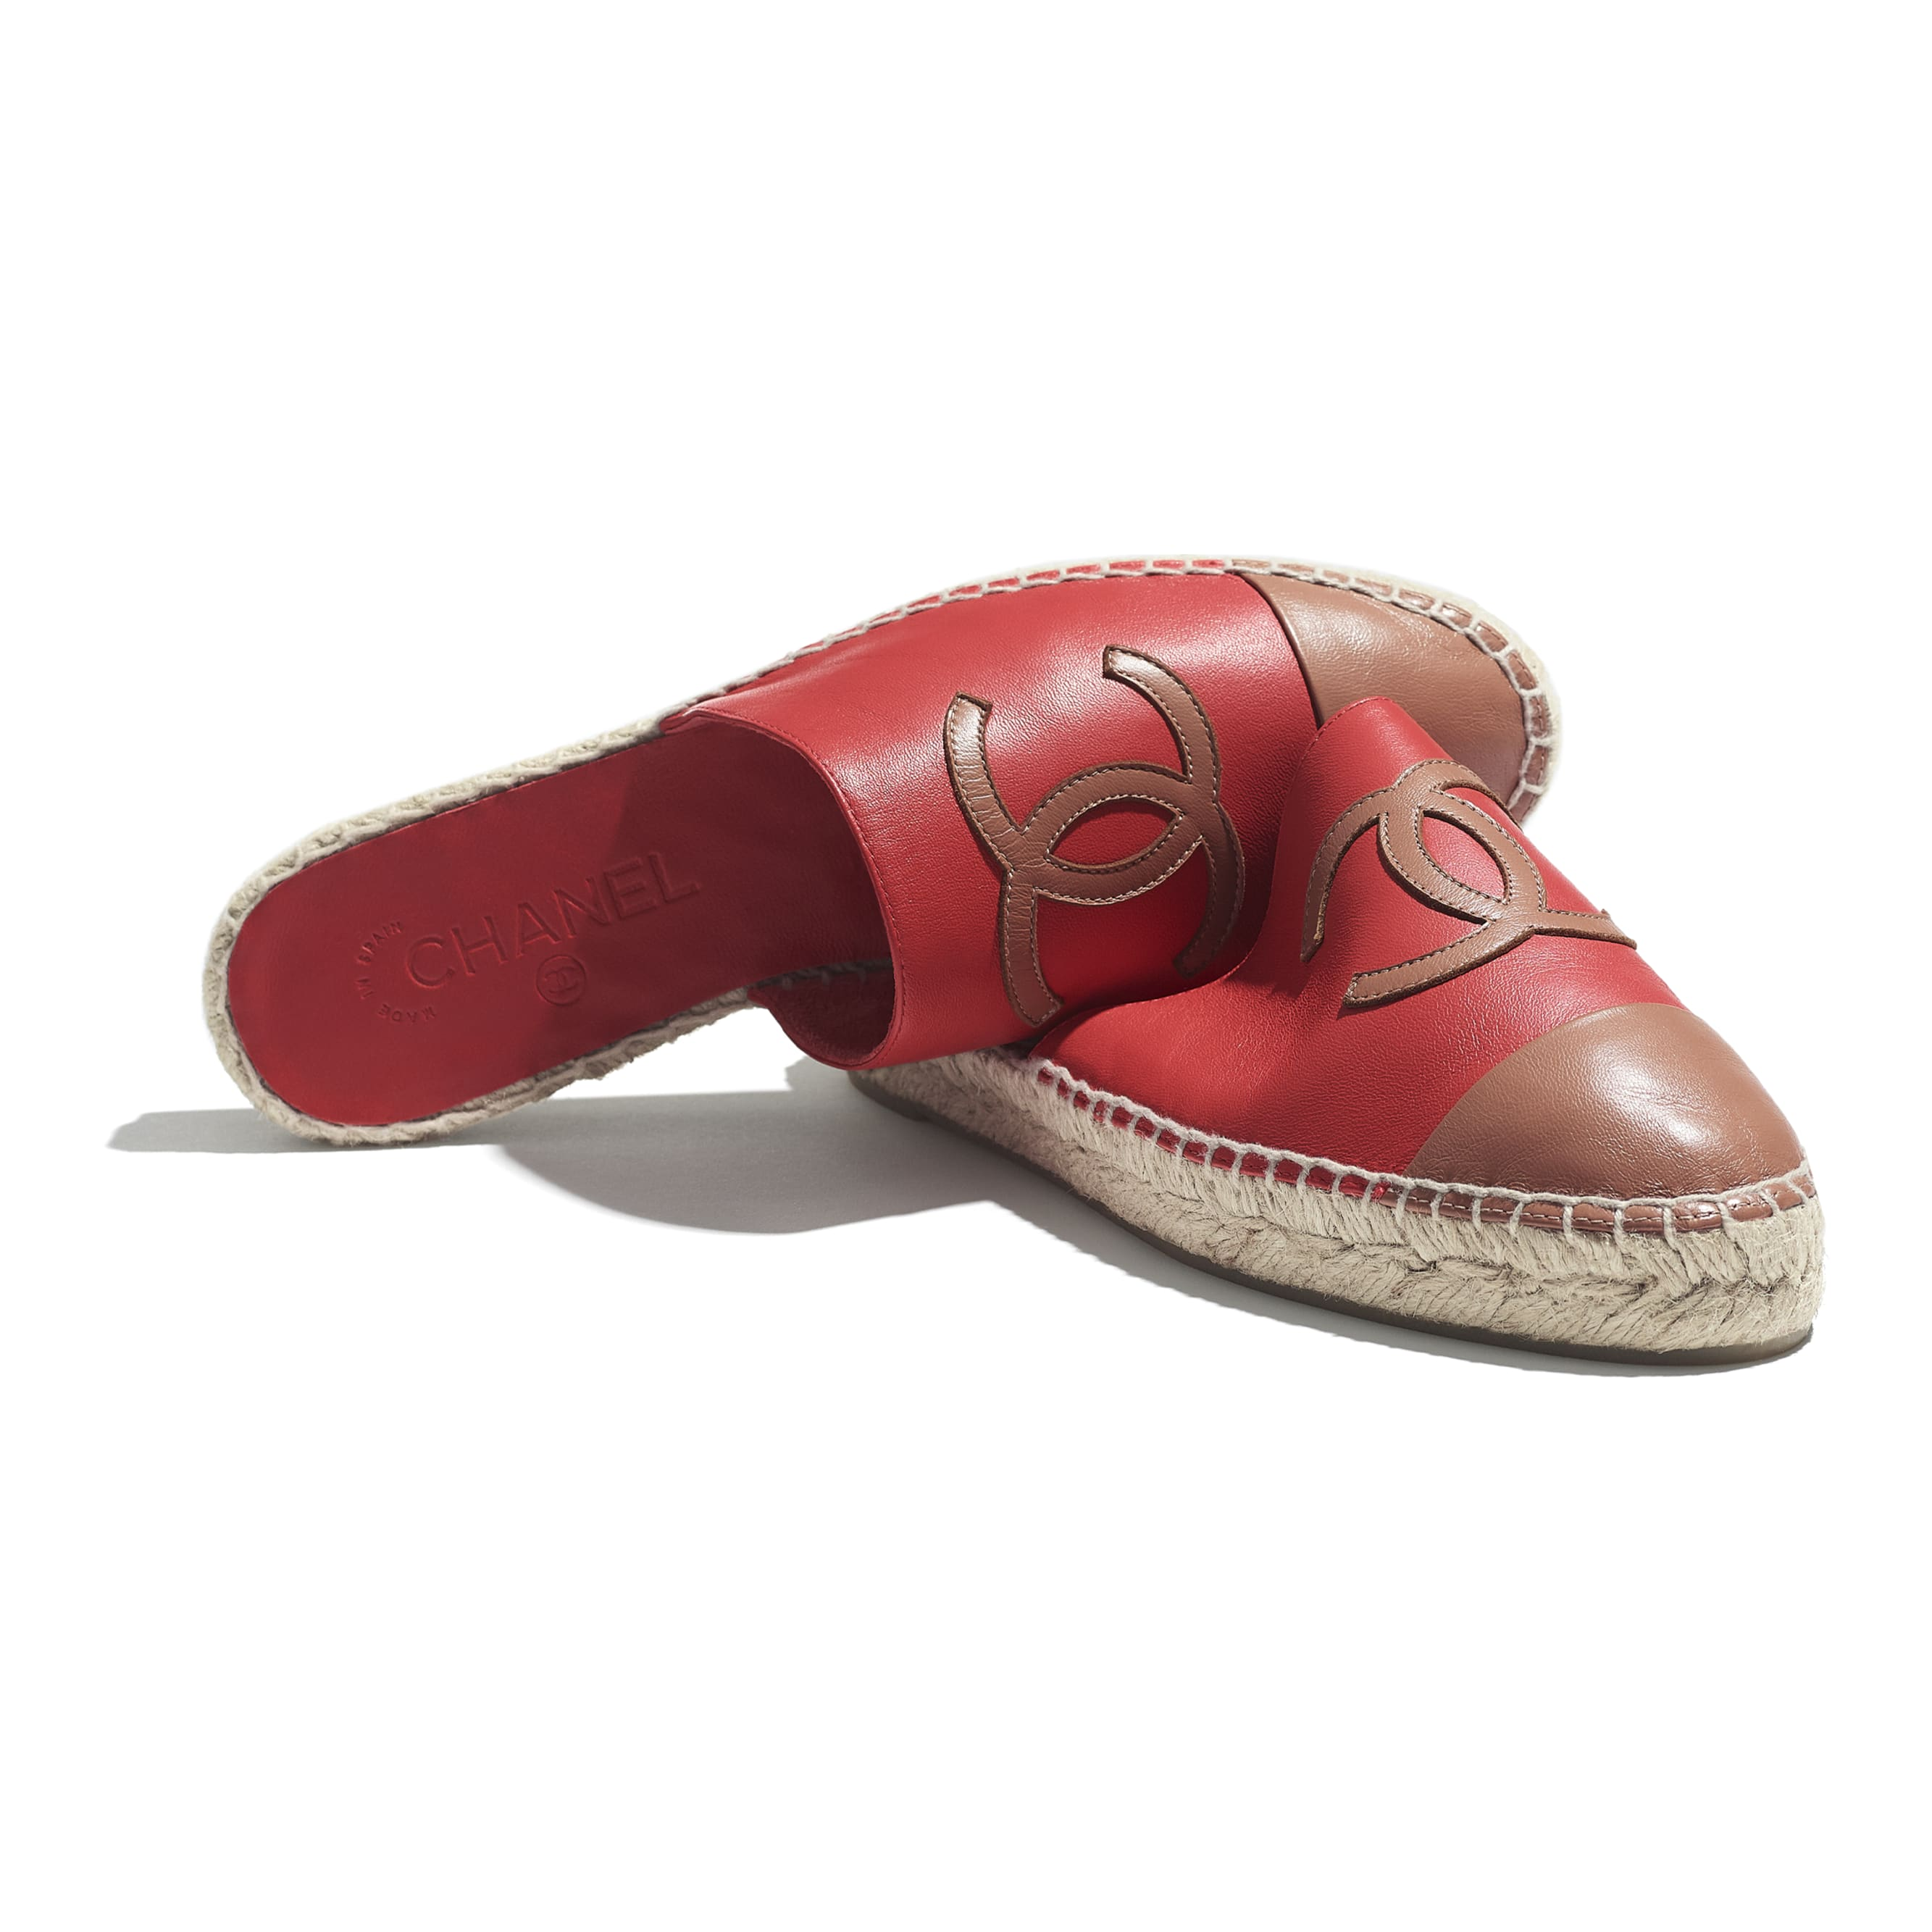 Espadrilles - Red & Brown - Lambskin - CHANEL - Extra view - see standard sized version